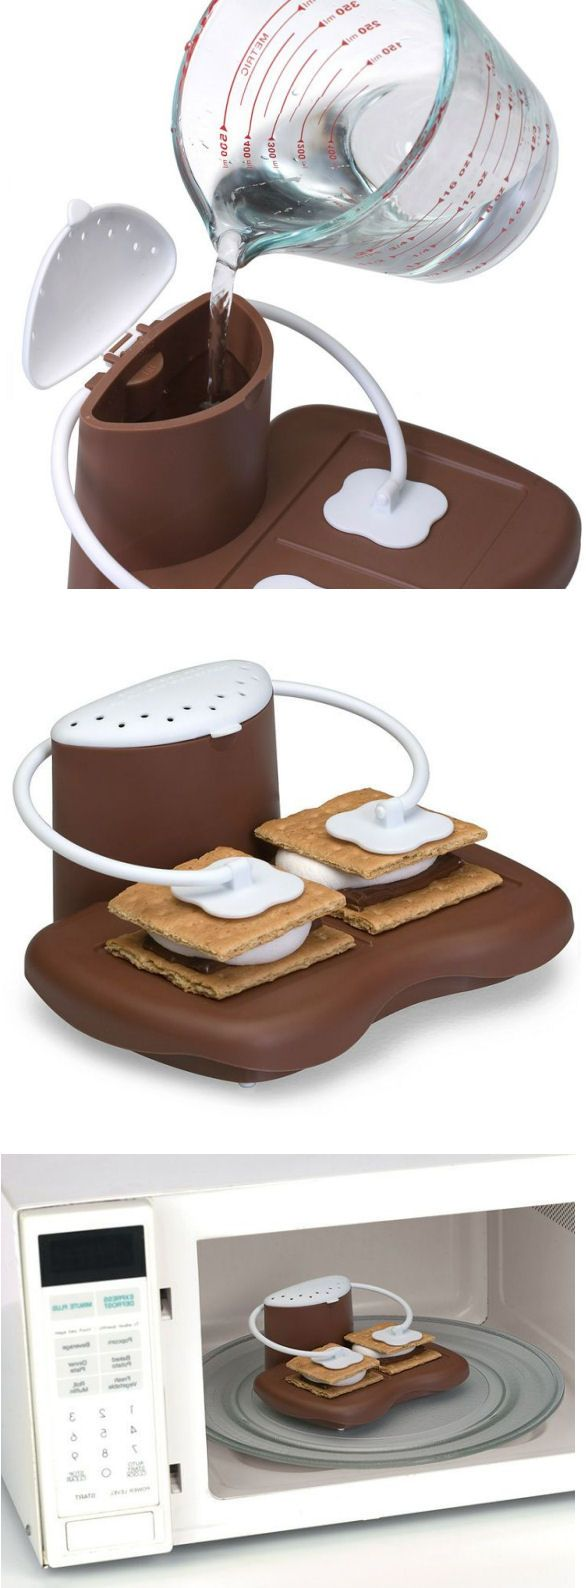 Microwaveable S'mores Maker //